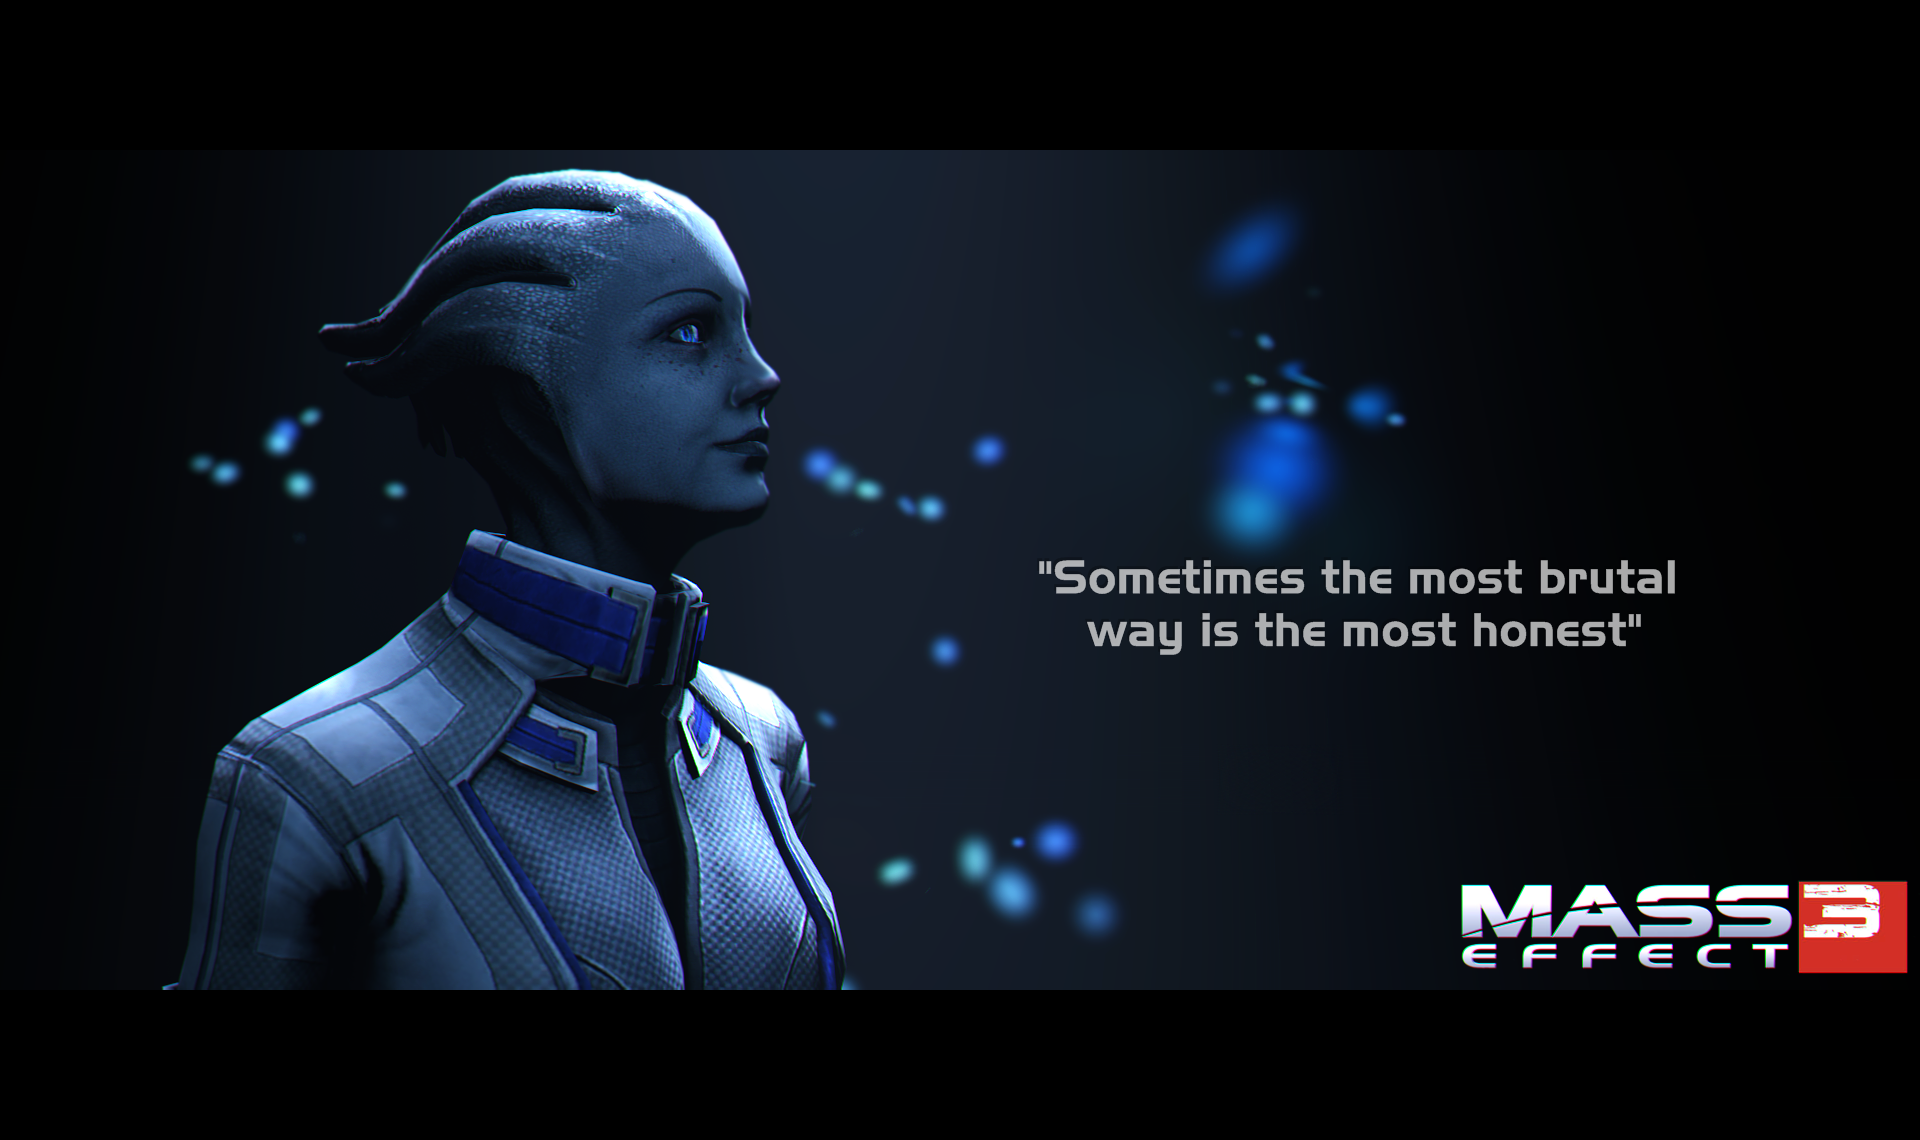 Mass Effect 3 Liara By Nikoskate On Deviantart Mass Effect Mass Effect 3 Mass Effect Funny